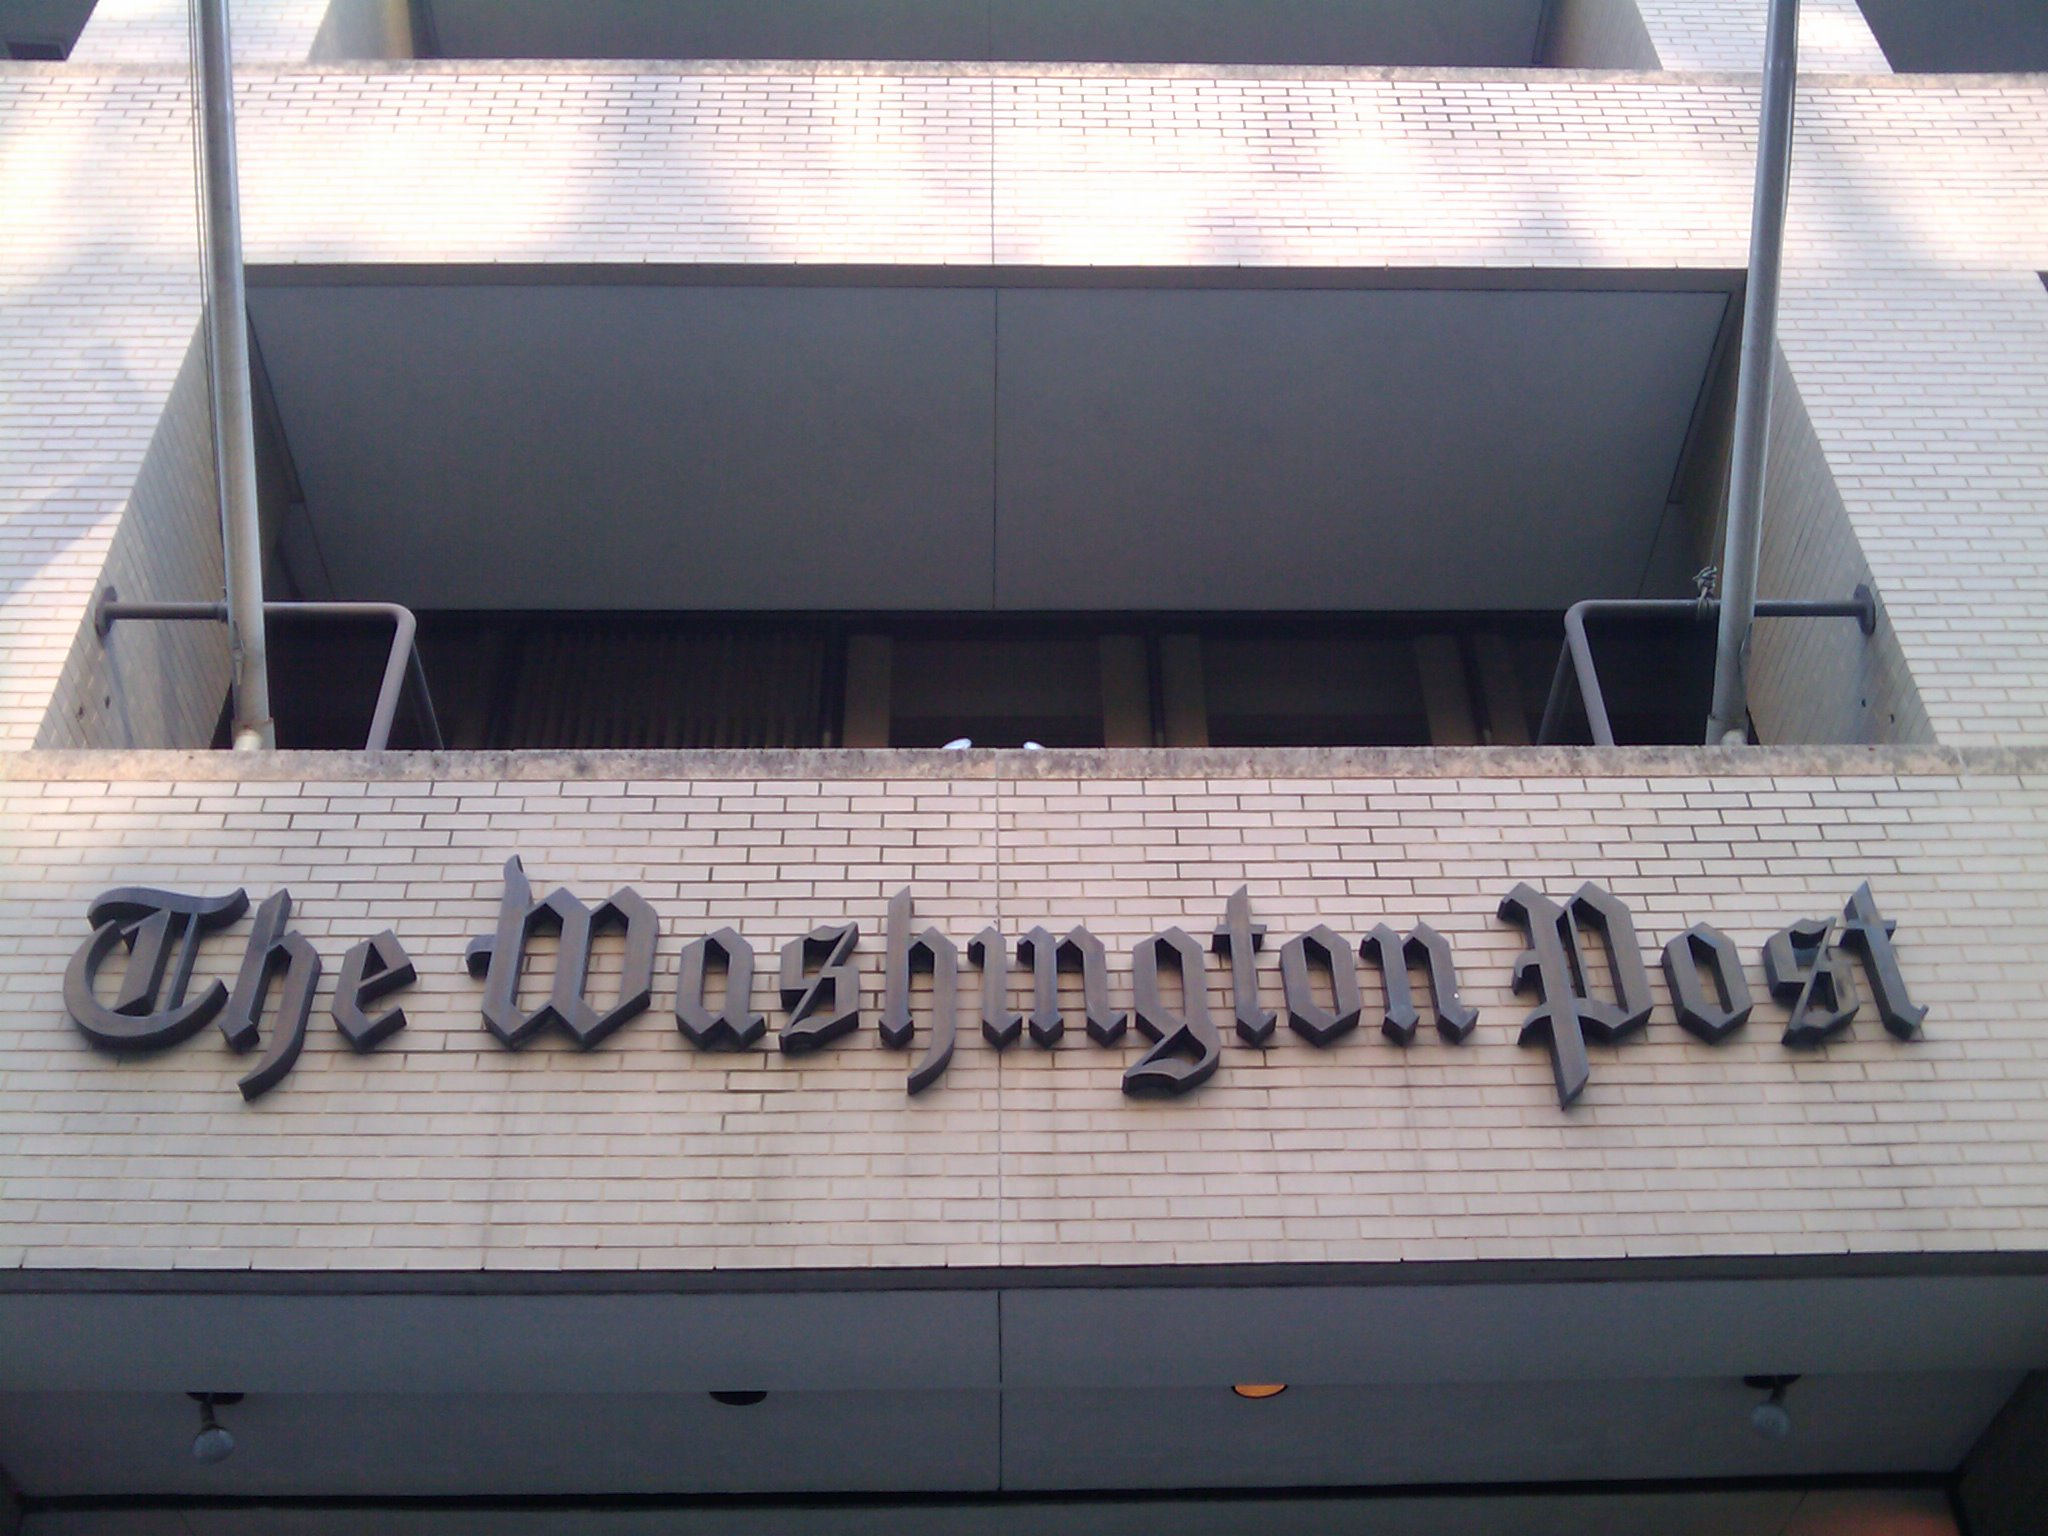 washington post building